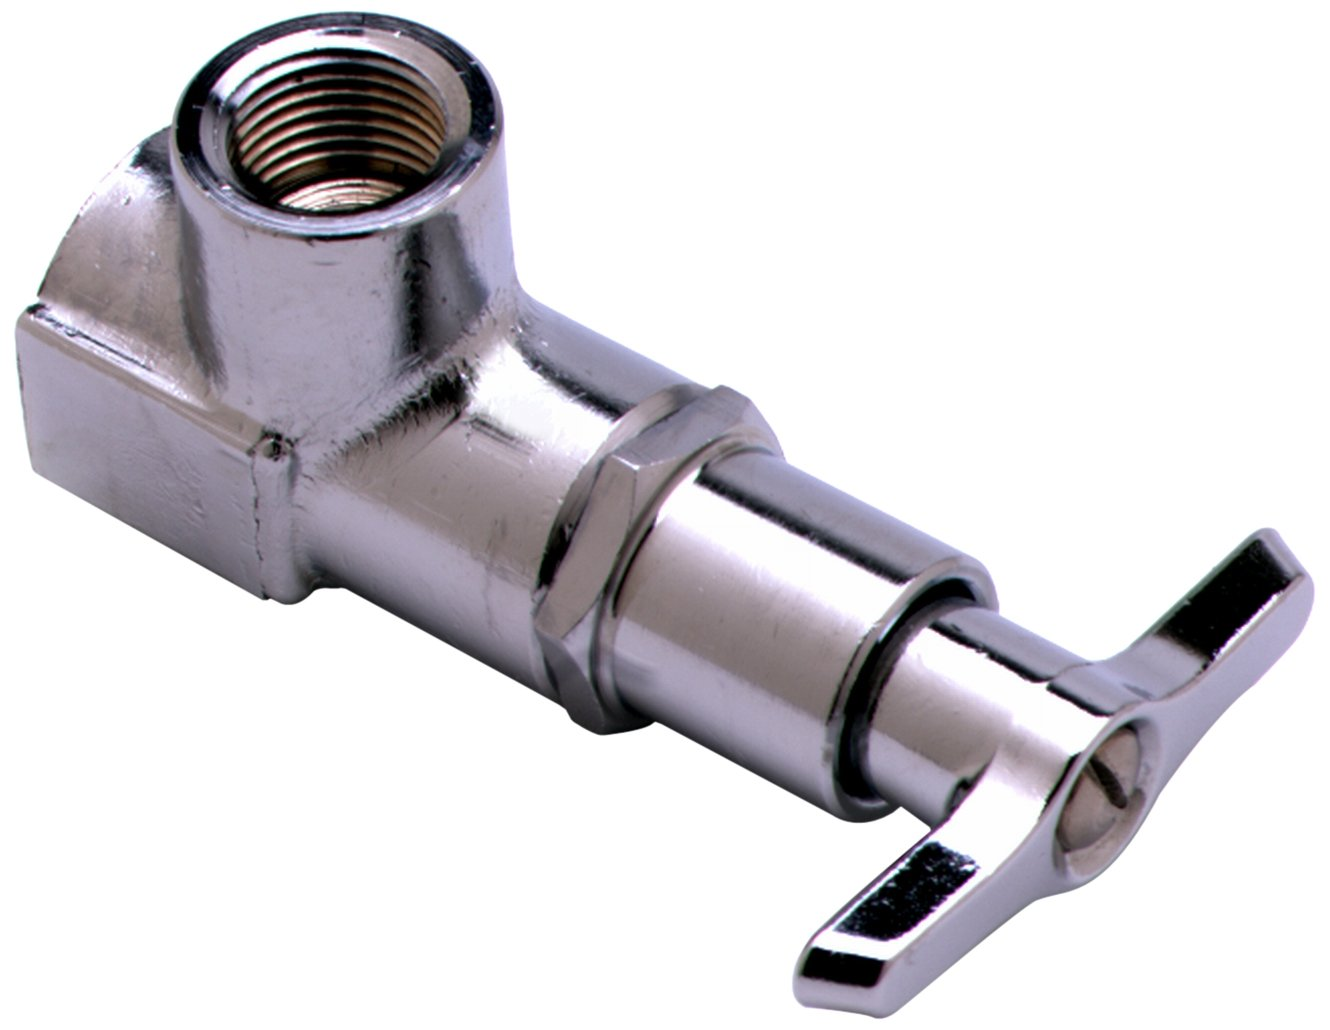 T/&S Brass B-1335 Angle Key Stop 1//2-Inch Npt Female Inlet 3//8-Inch Npt Female Outlet